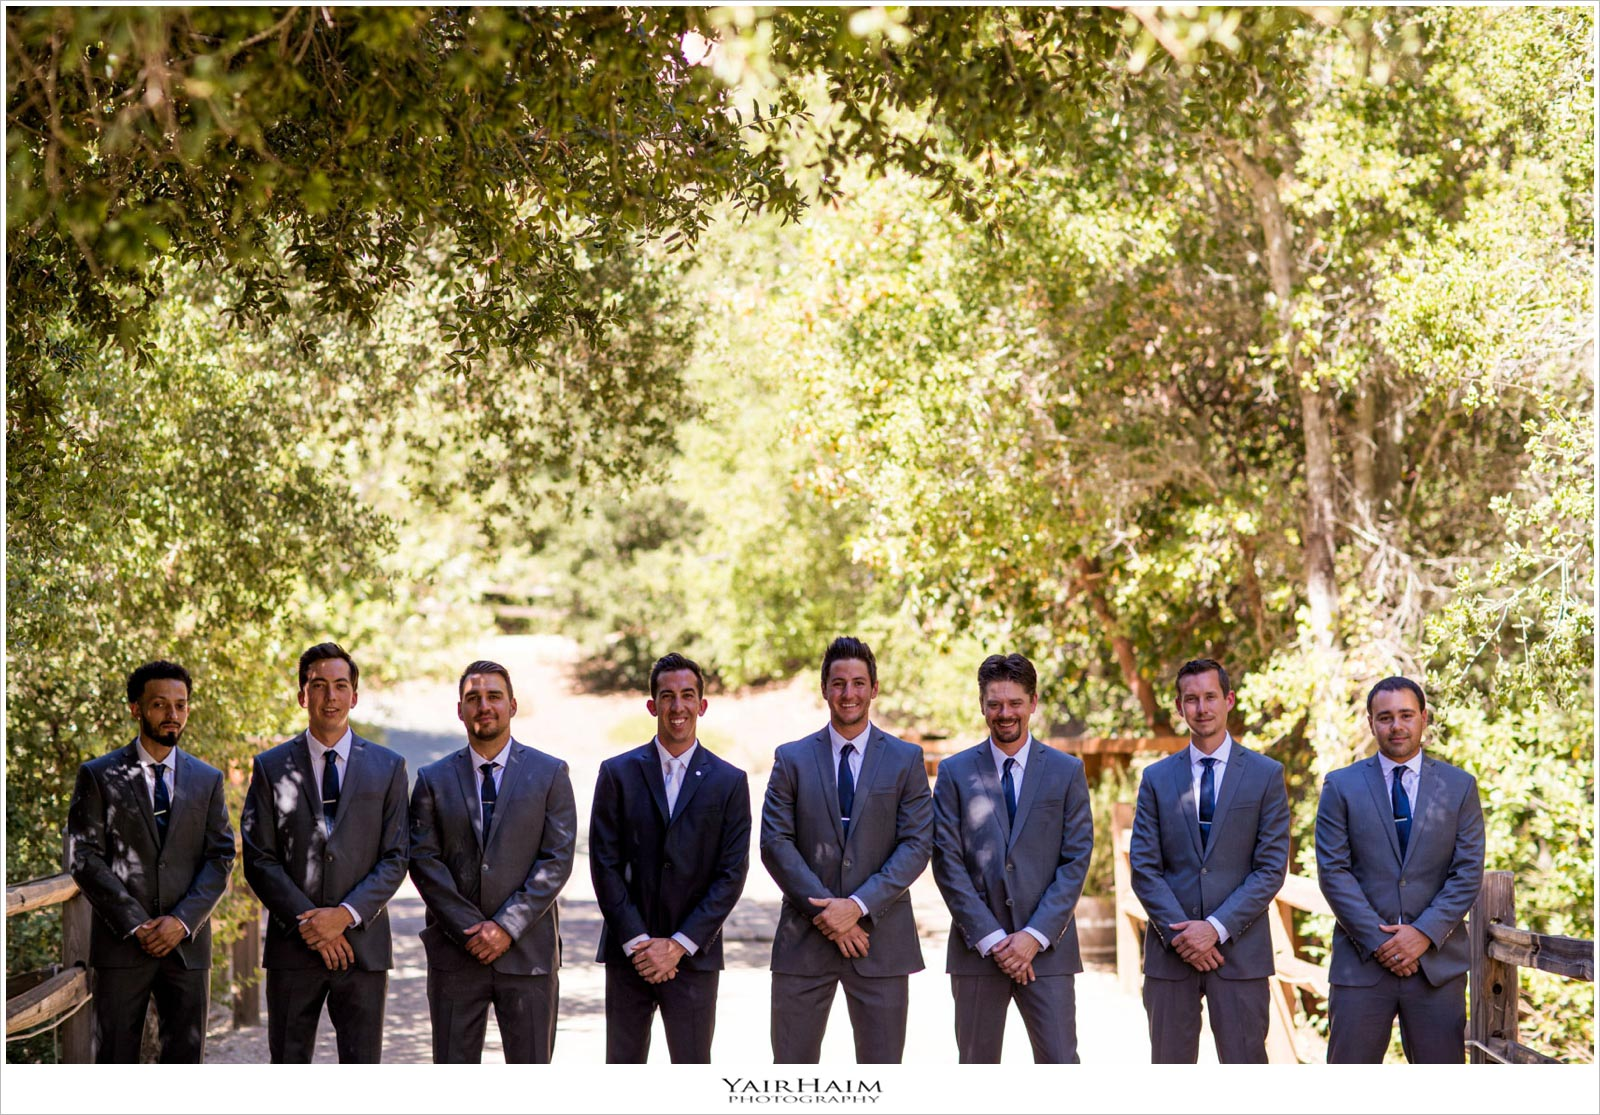 Destination-wedding-photographer-Yair-Haim-14